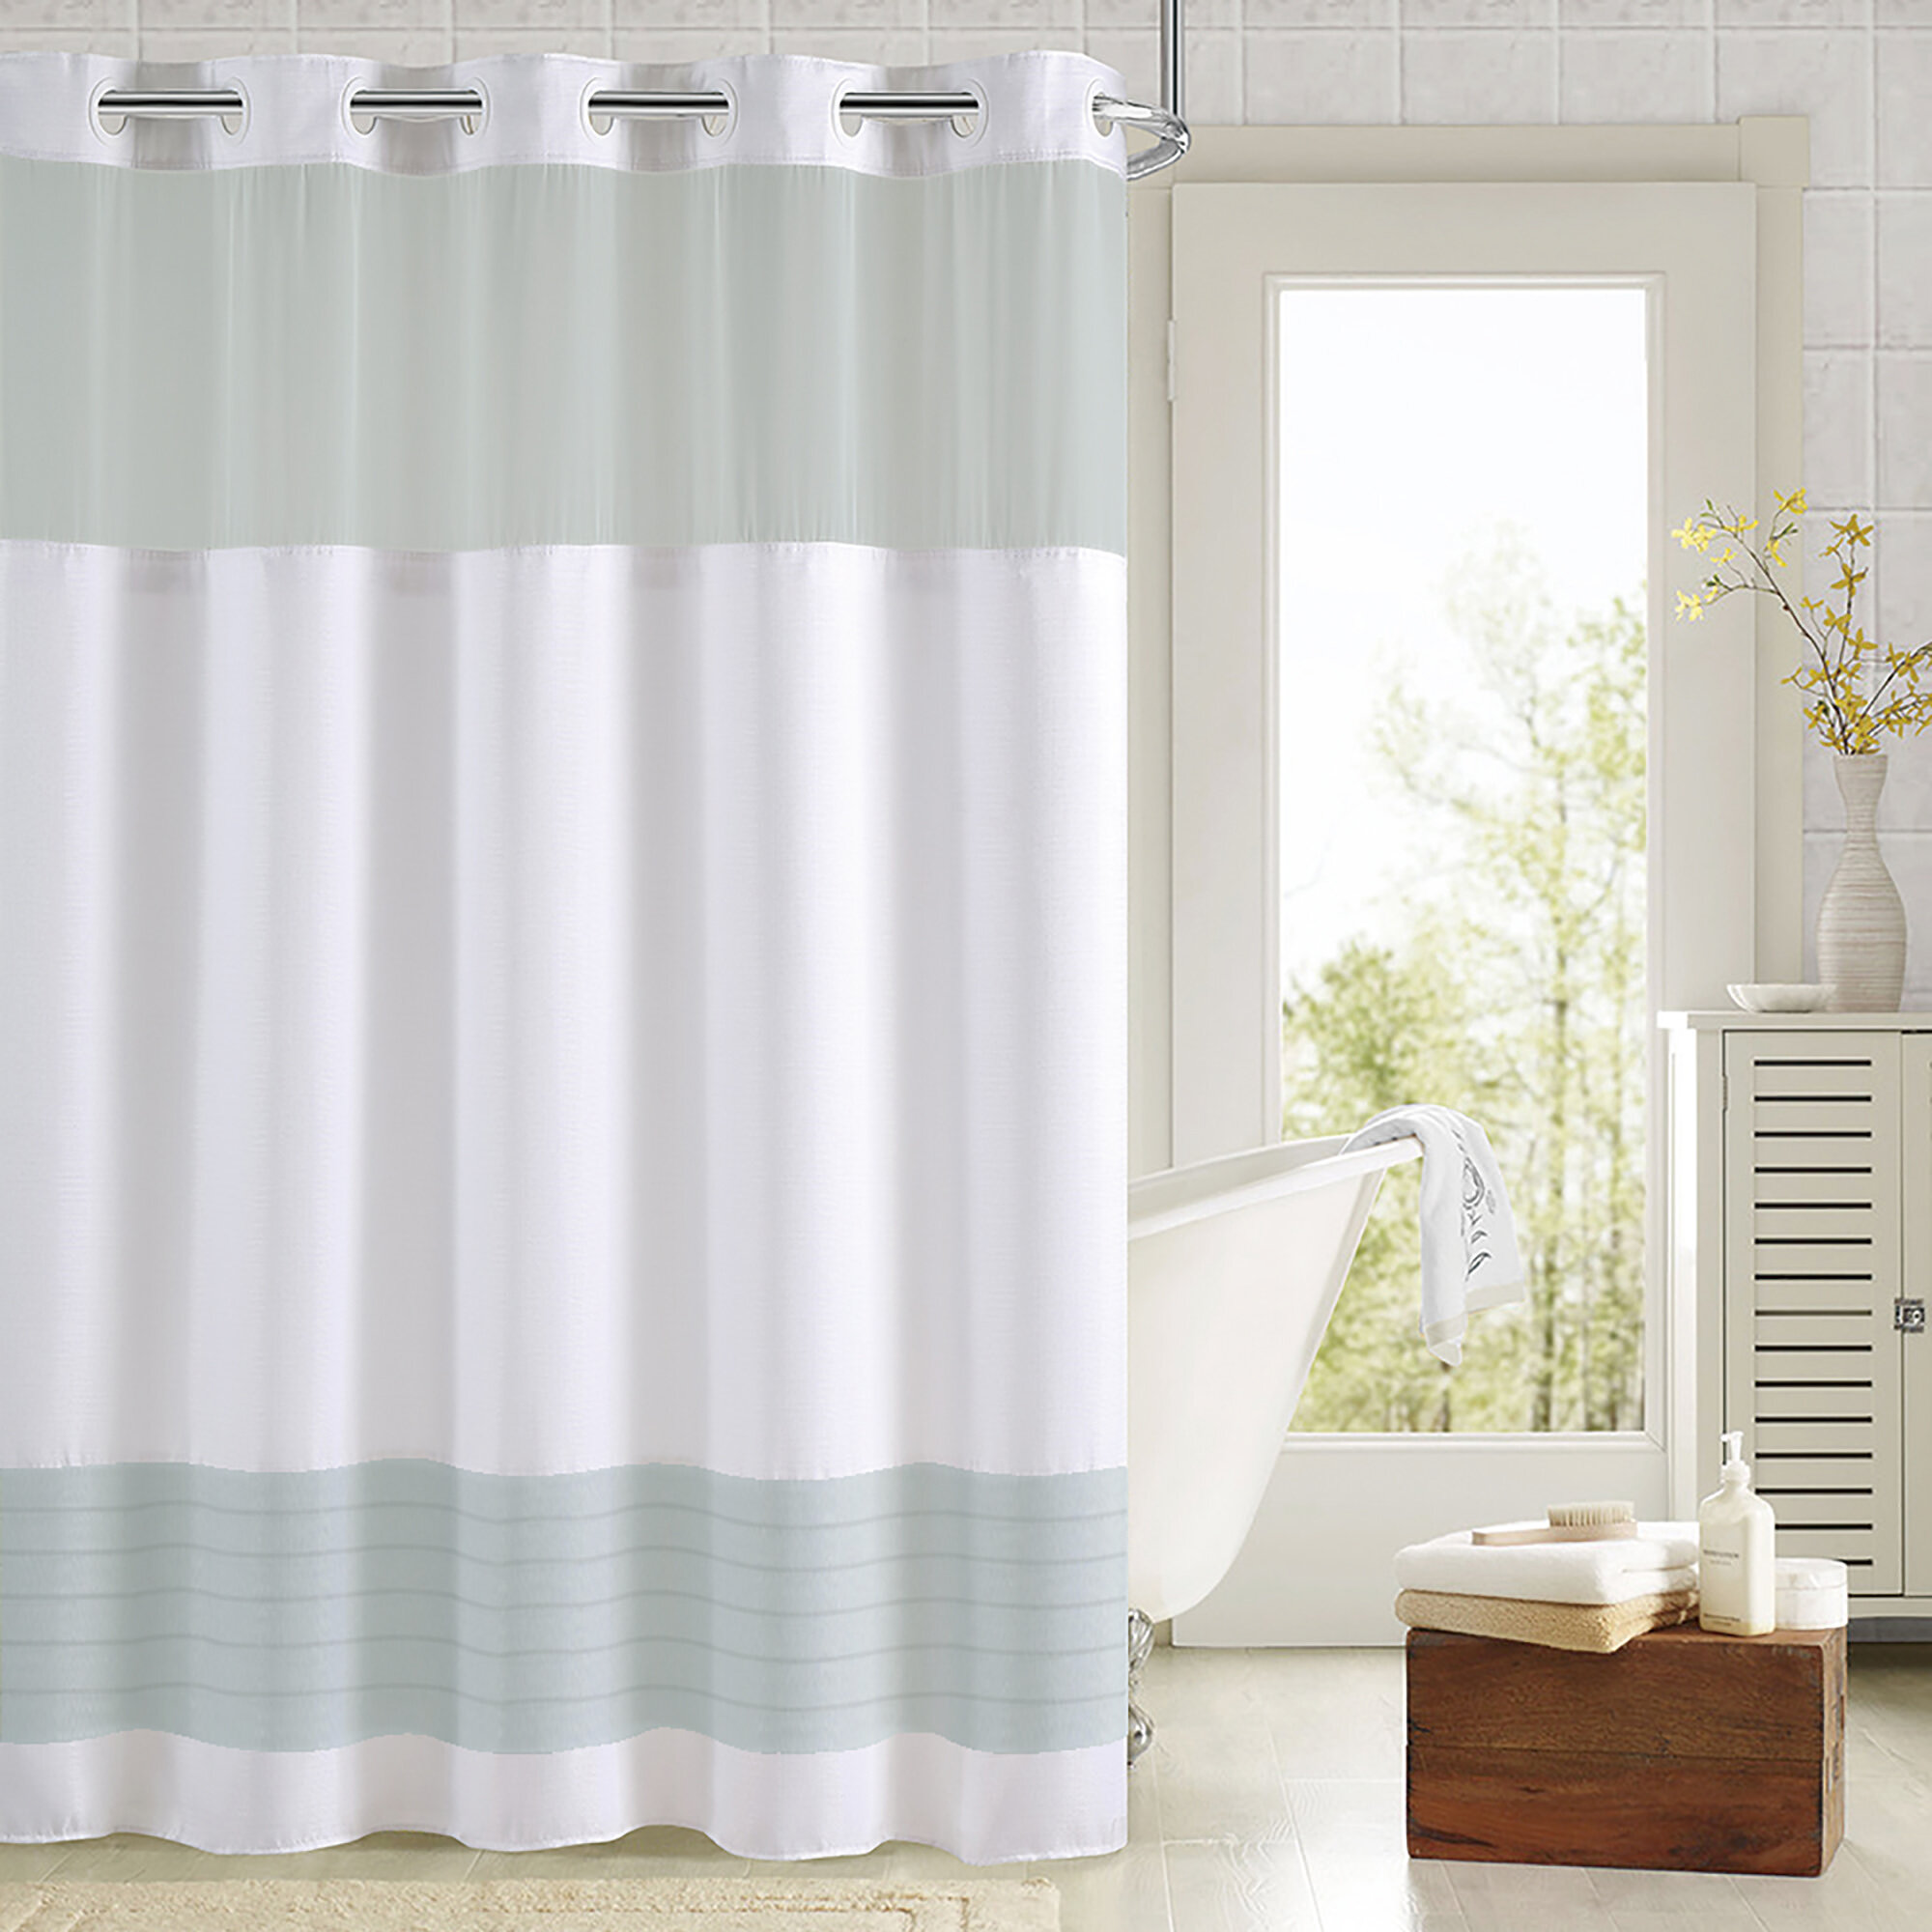 Highland Dunes Colour Block Shower Curtain With Fabric Liner Navy